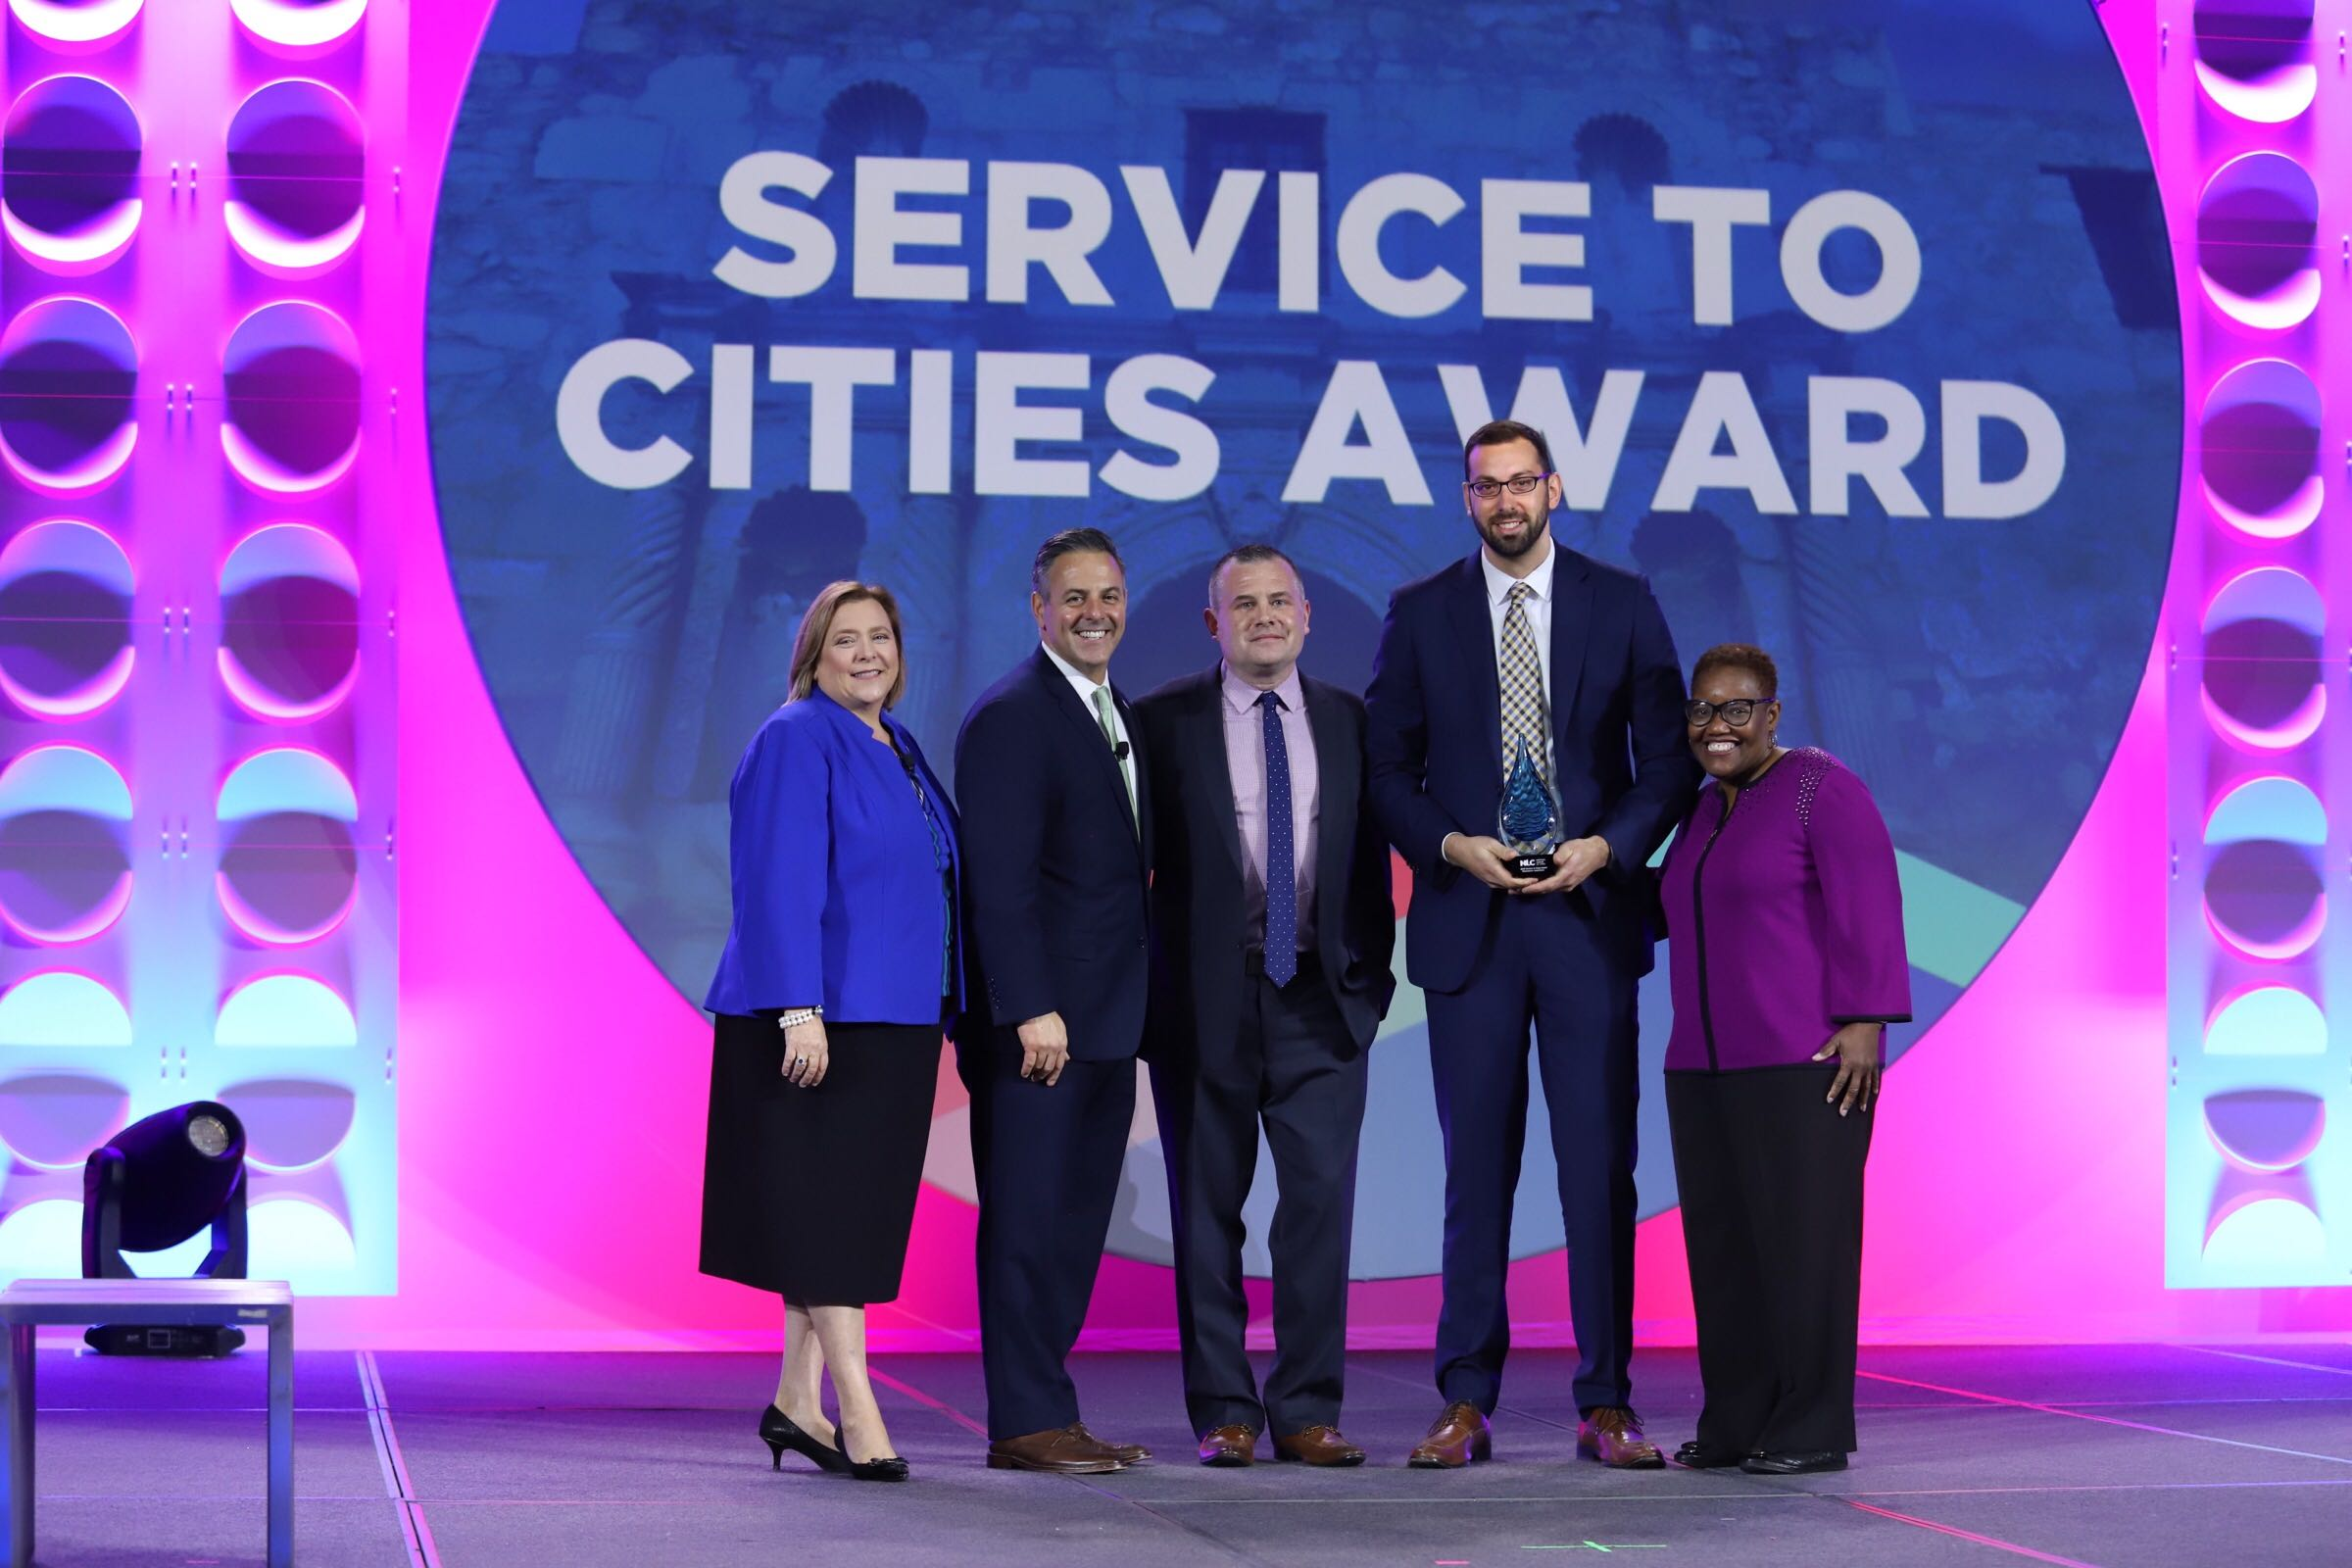 Service to Cities Award